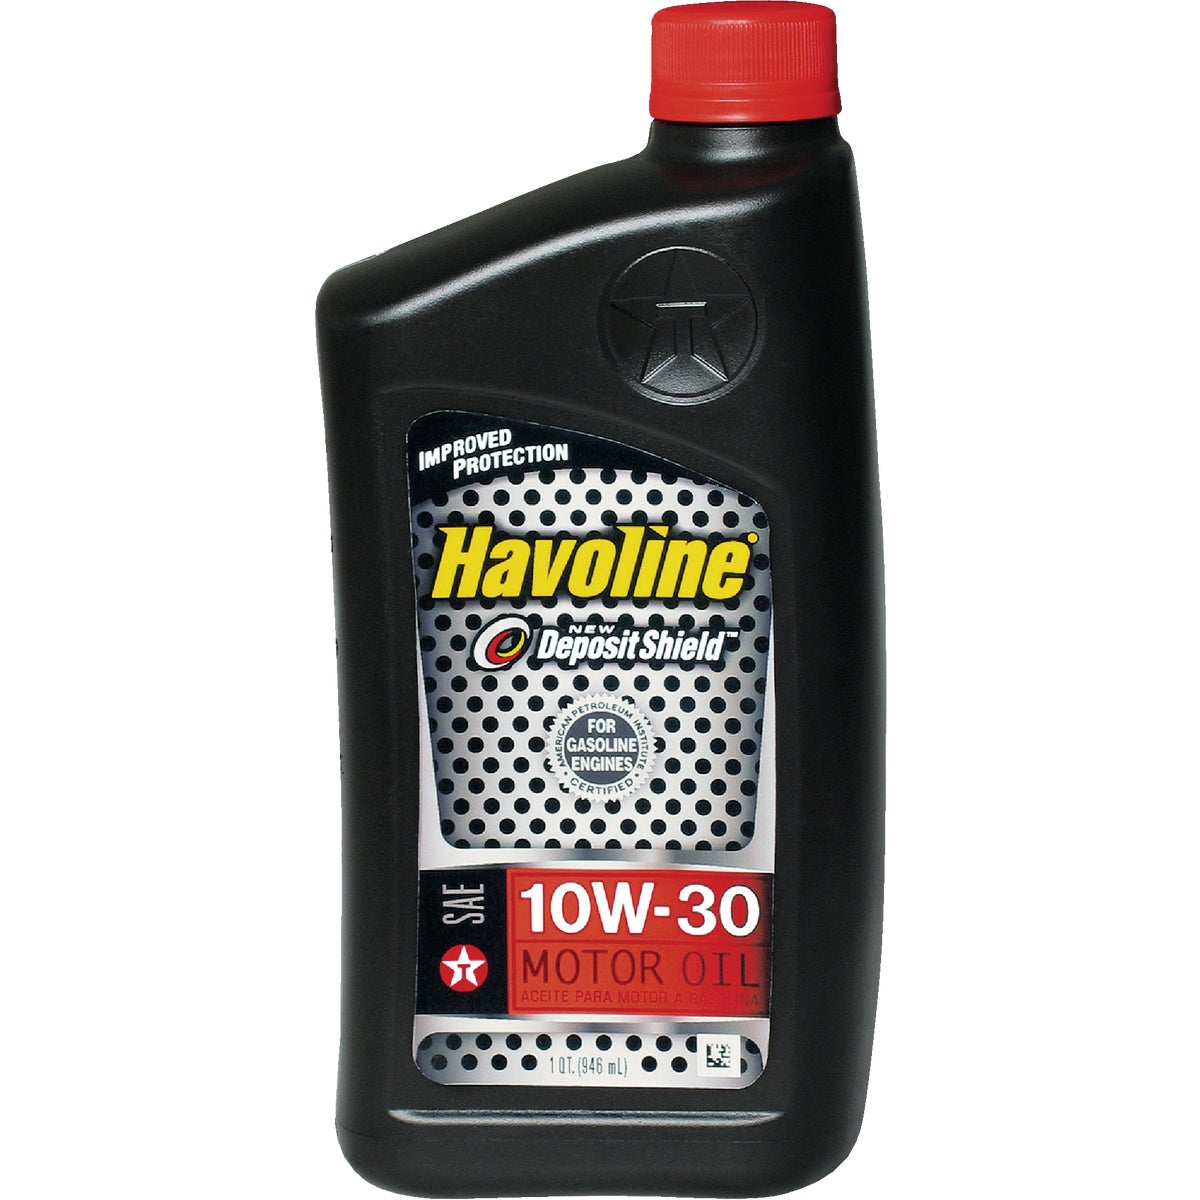 HAVOLINE 10W30 MOTOR OIL - HAVO223395 by Twinco Romax